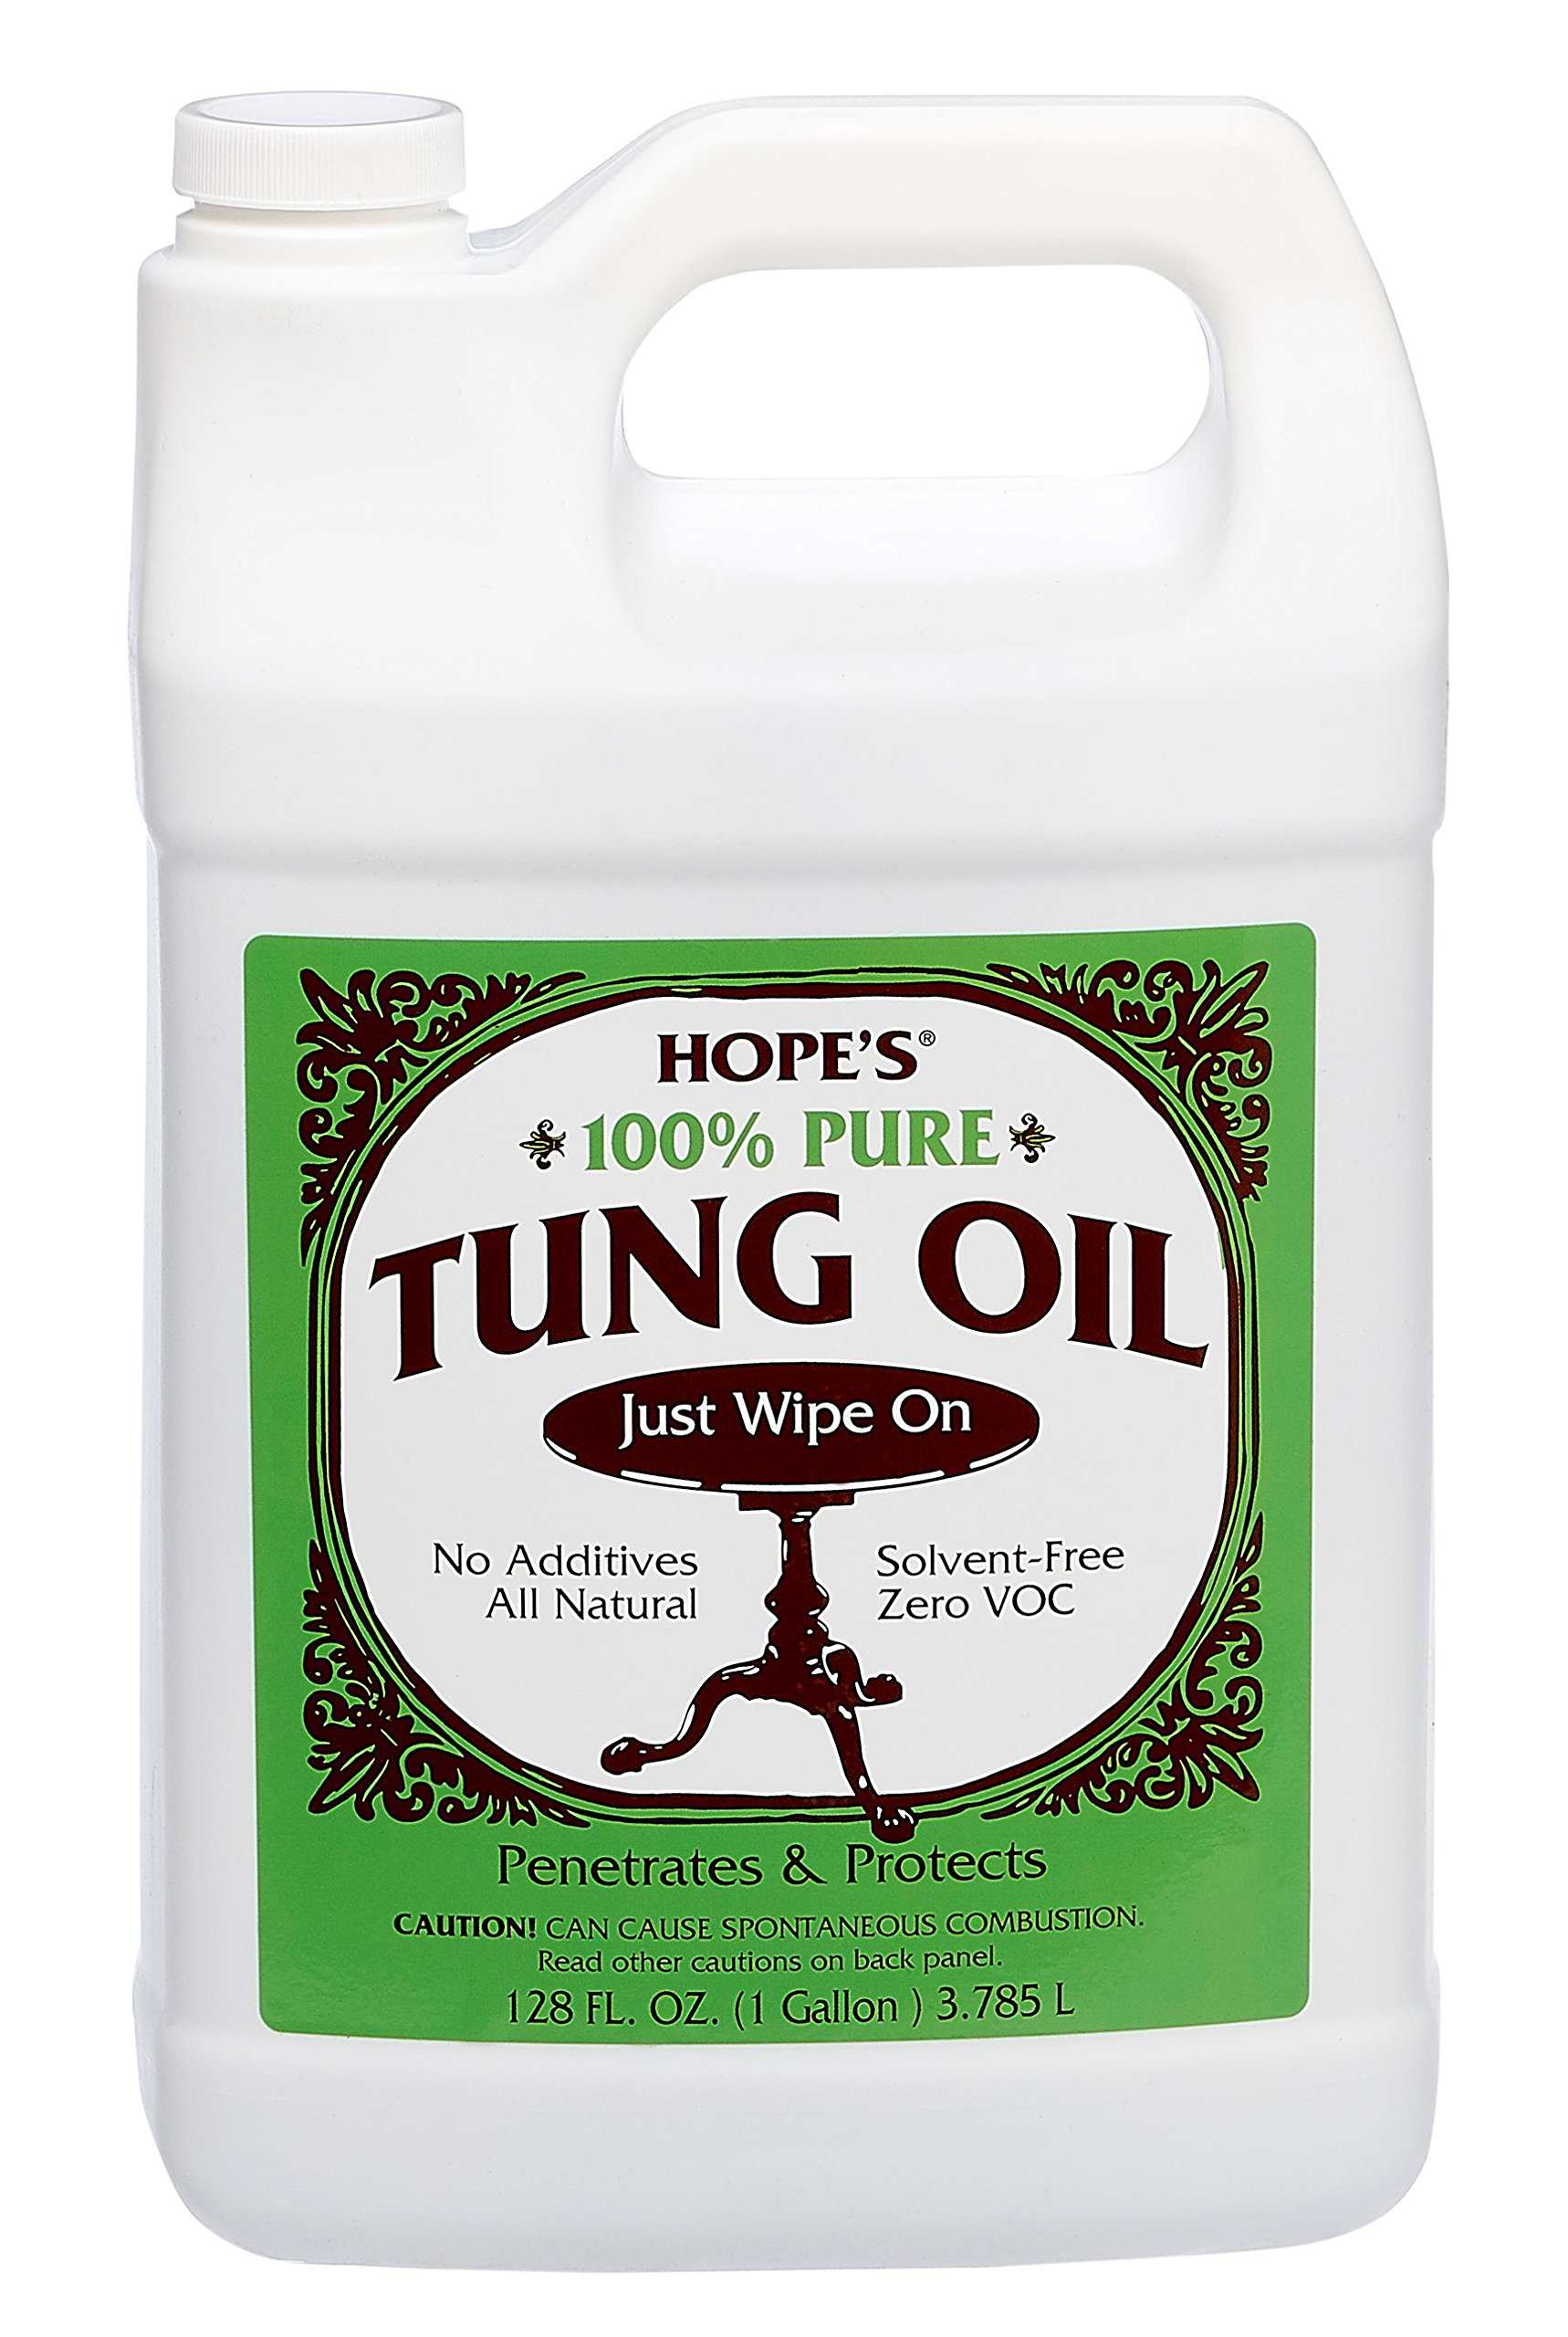 Hope Company 128to2 100% Pure Tung Oil - 1 Gallon by HOPE'S